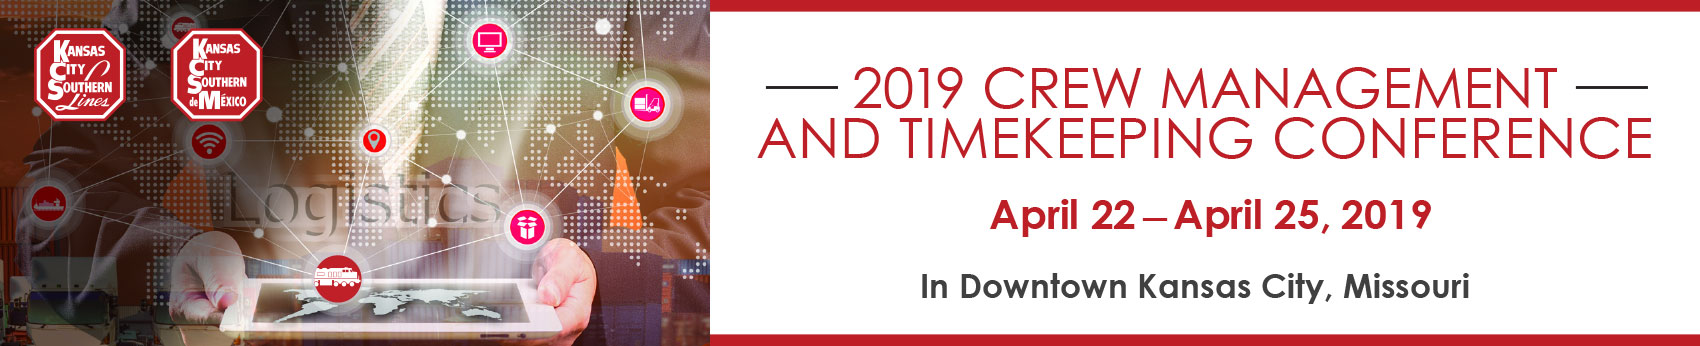 2019 Crew Management and Timekeeping Conference